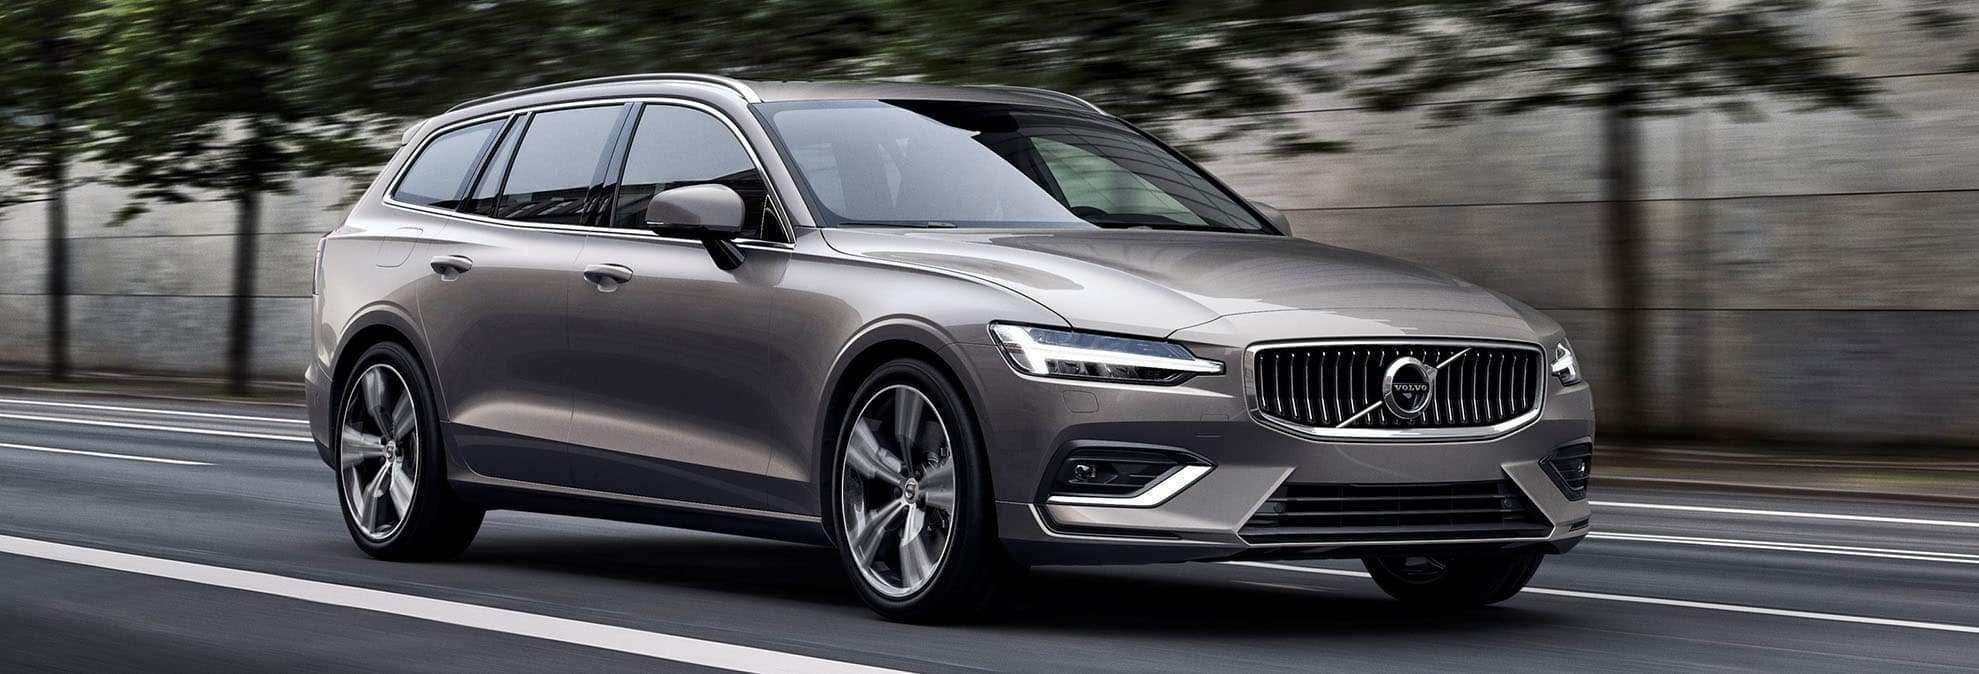 84 A Volvo 2019 Station Wagon Exterior And Interior